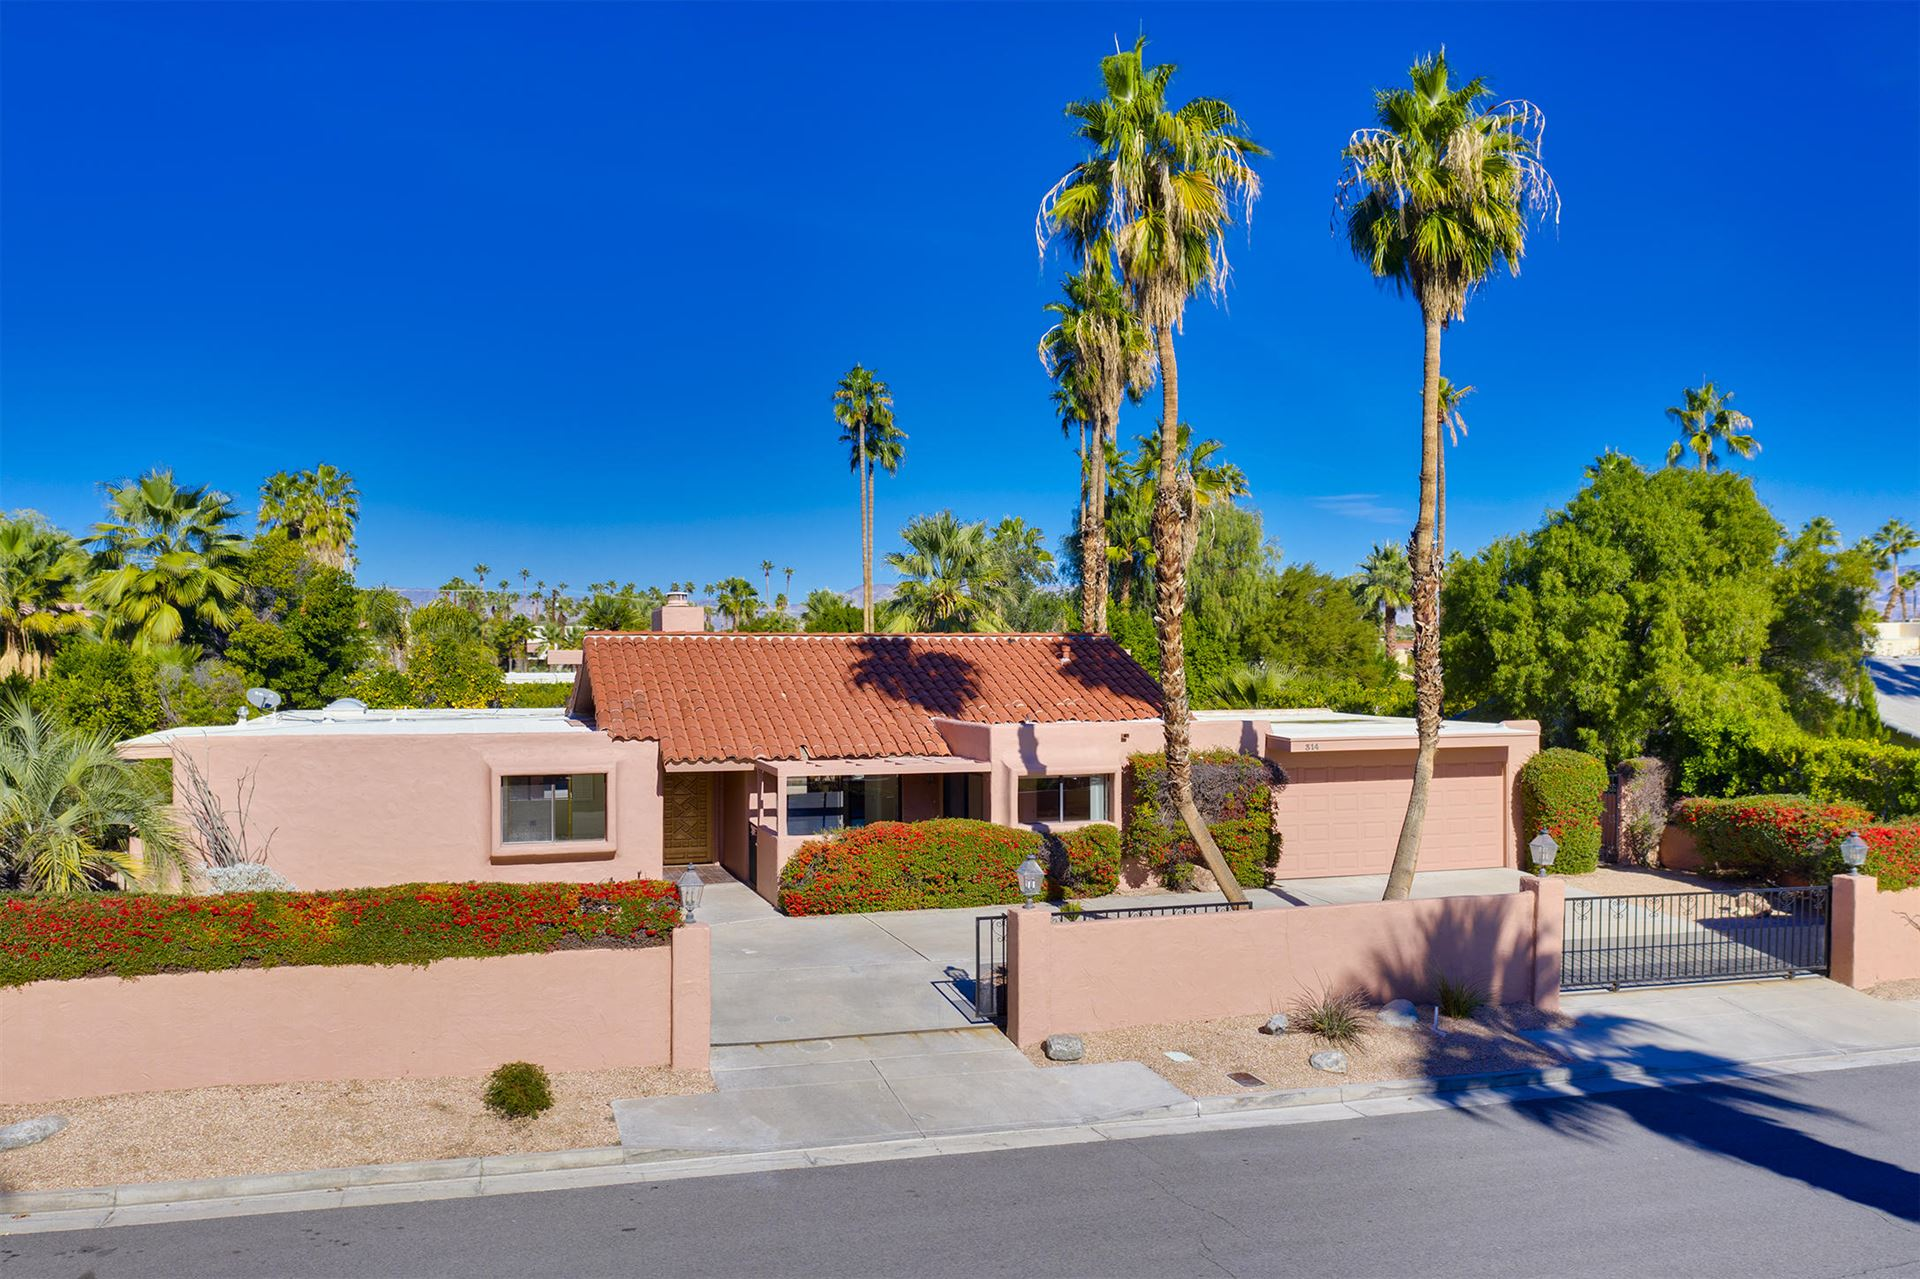 314 W ViA Sol, Palm Springs, CA 92262 - #: 219035723